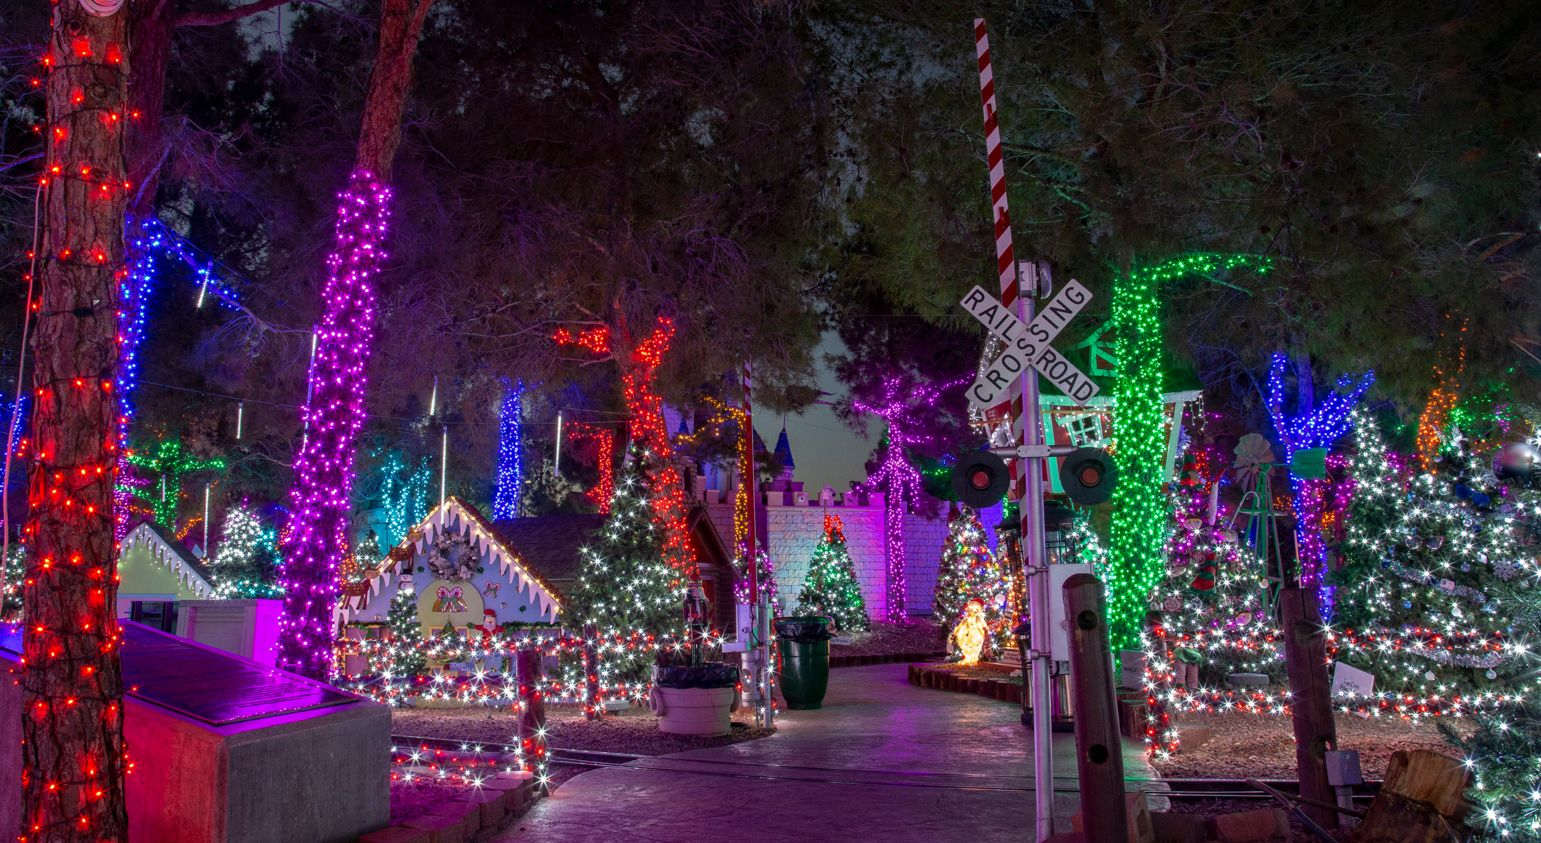 A garden and trees adorned in colorful Christmas lights.